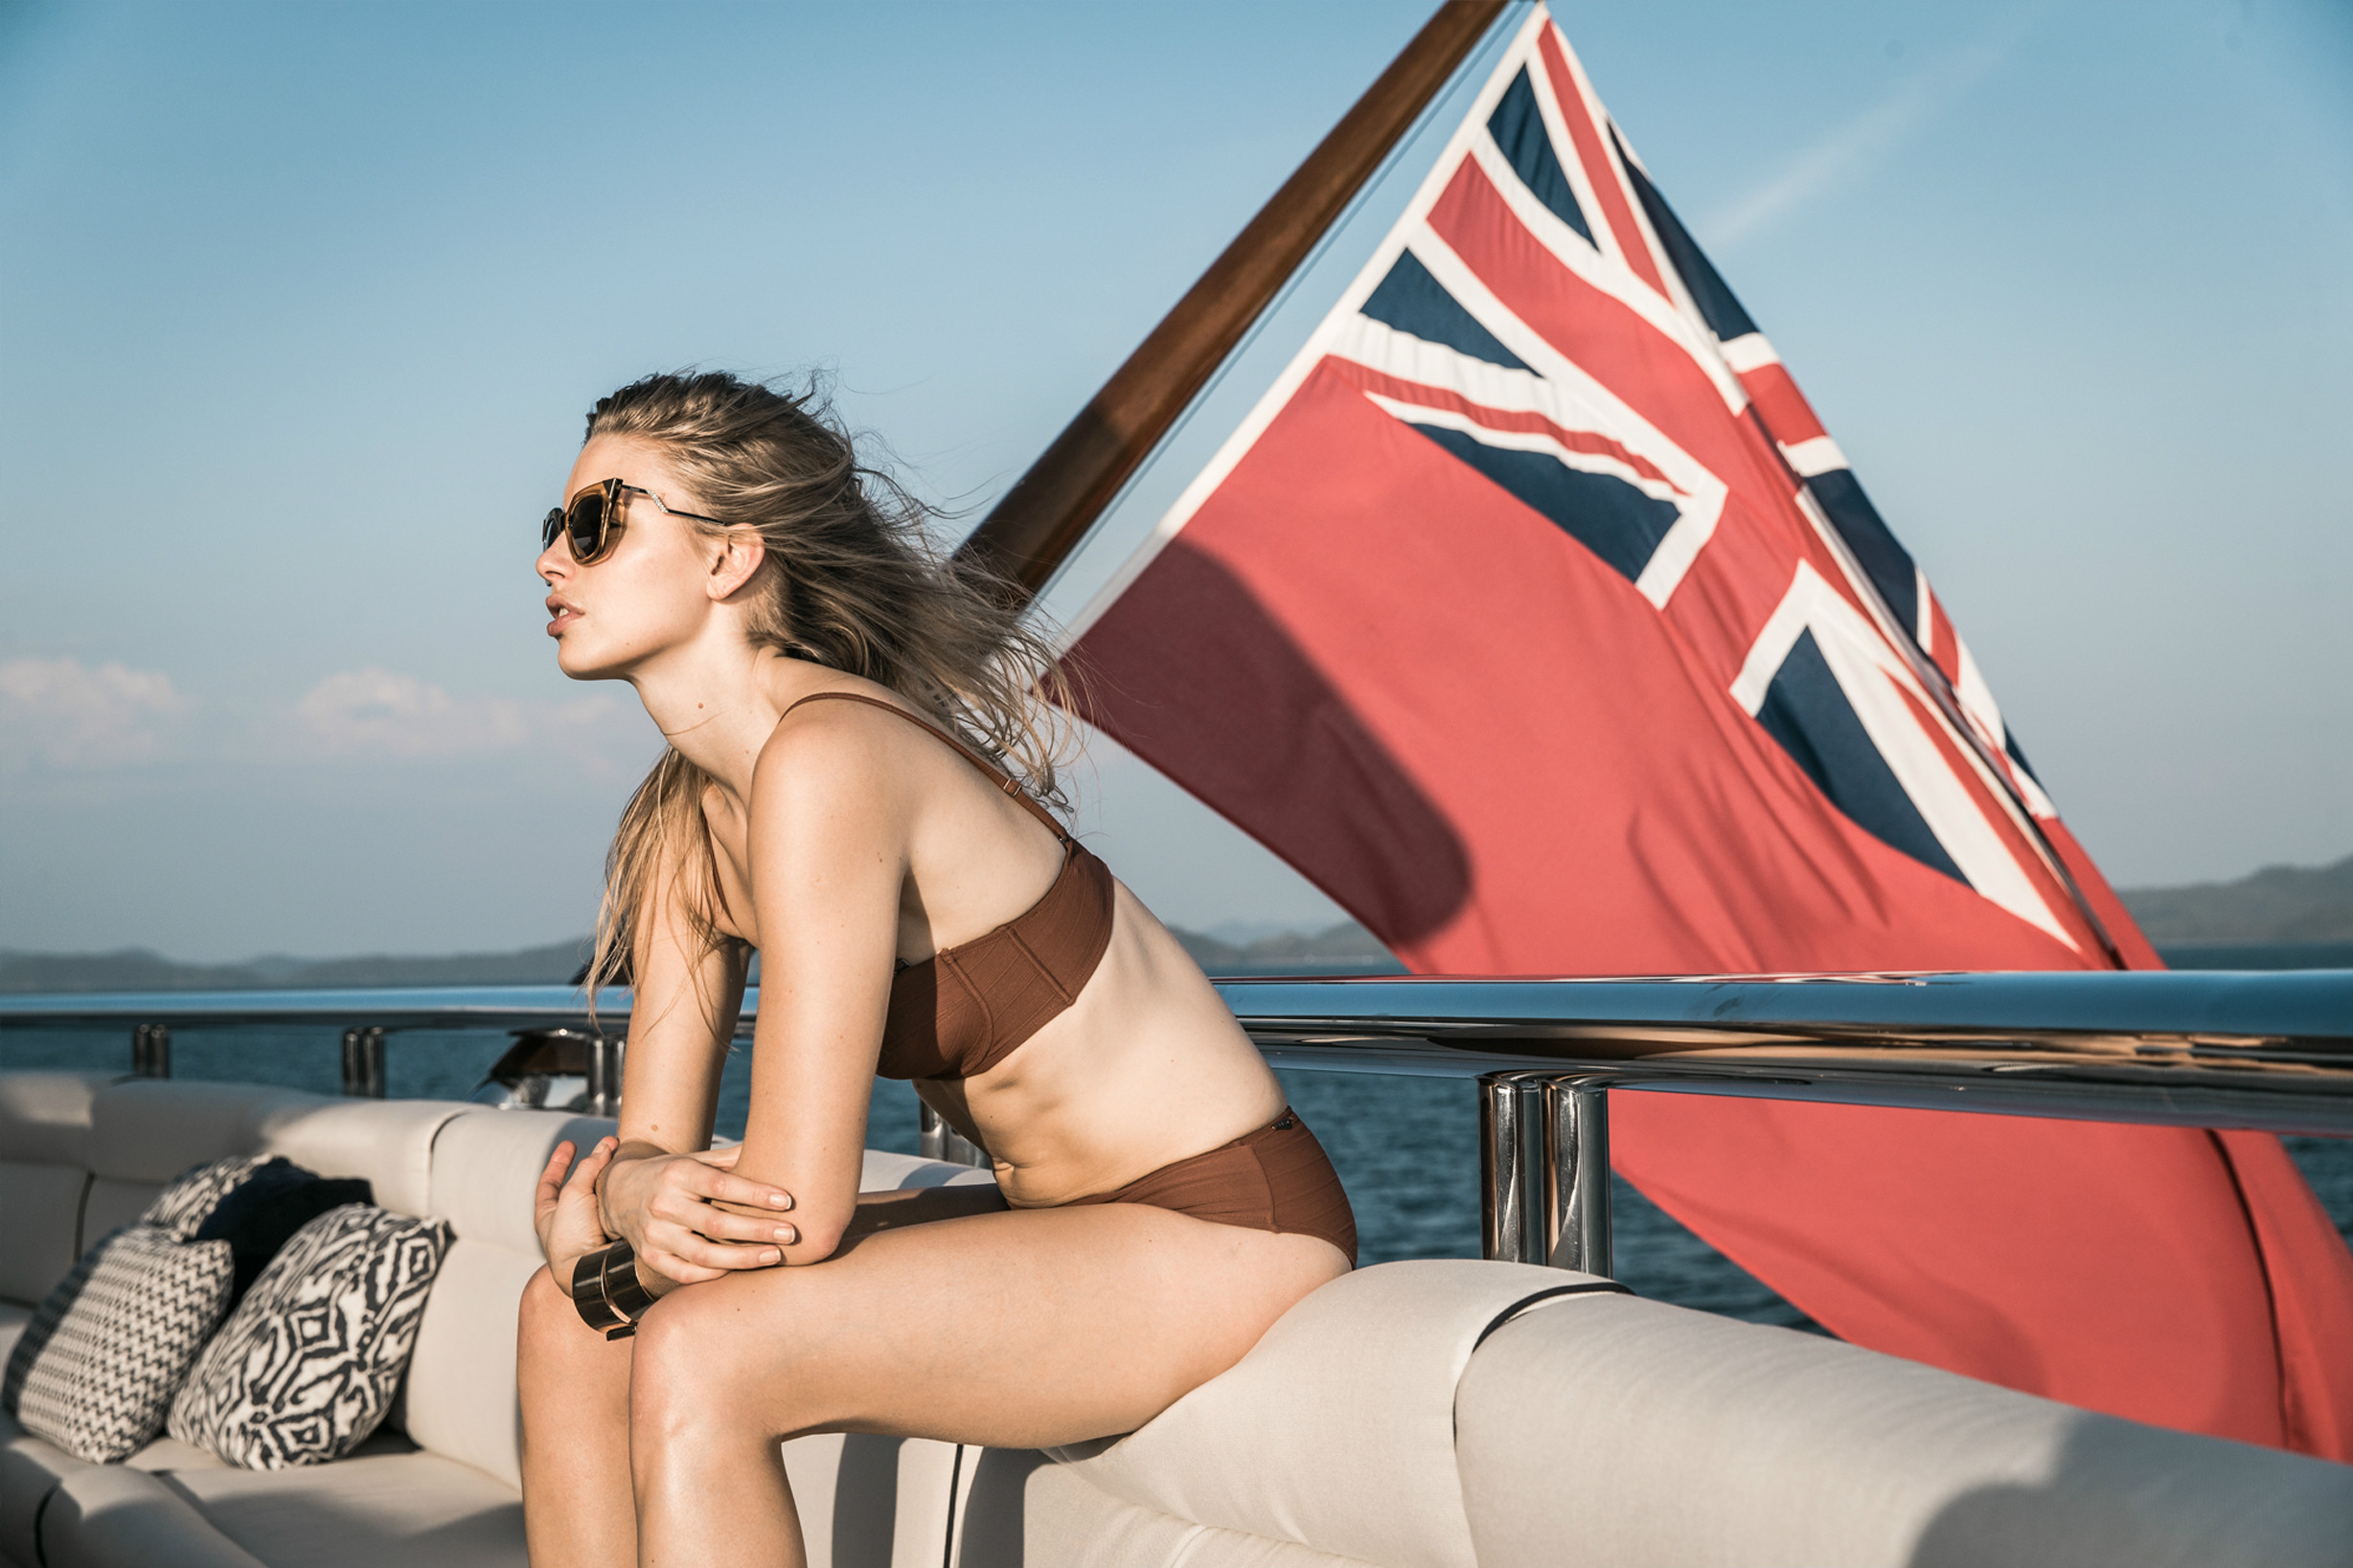 Titania offering relaxing charter vacations